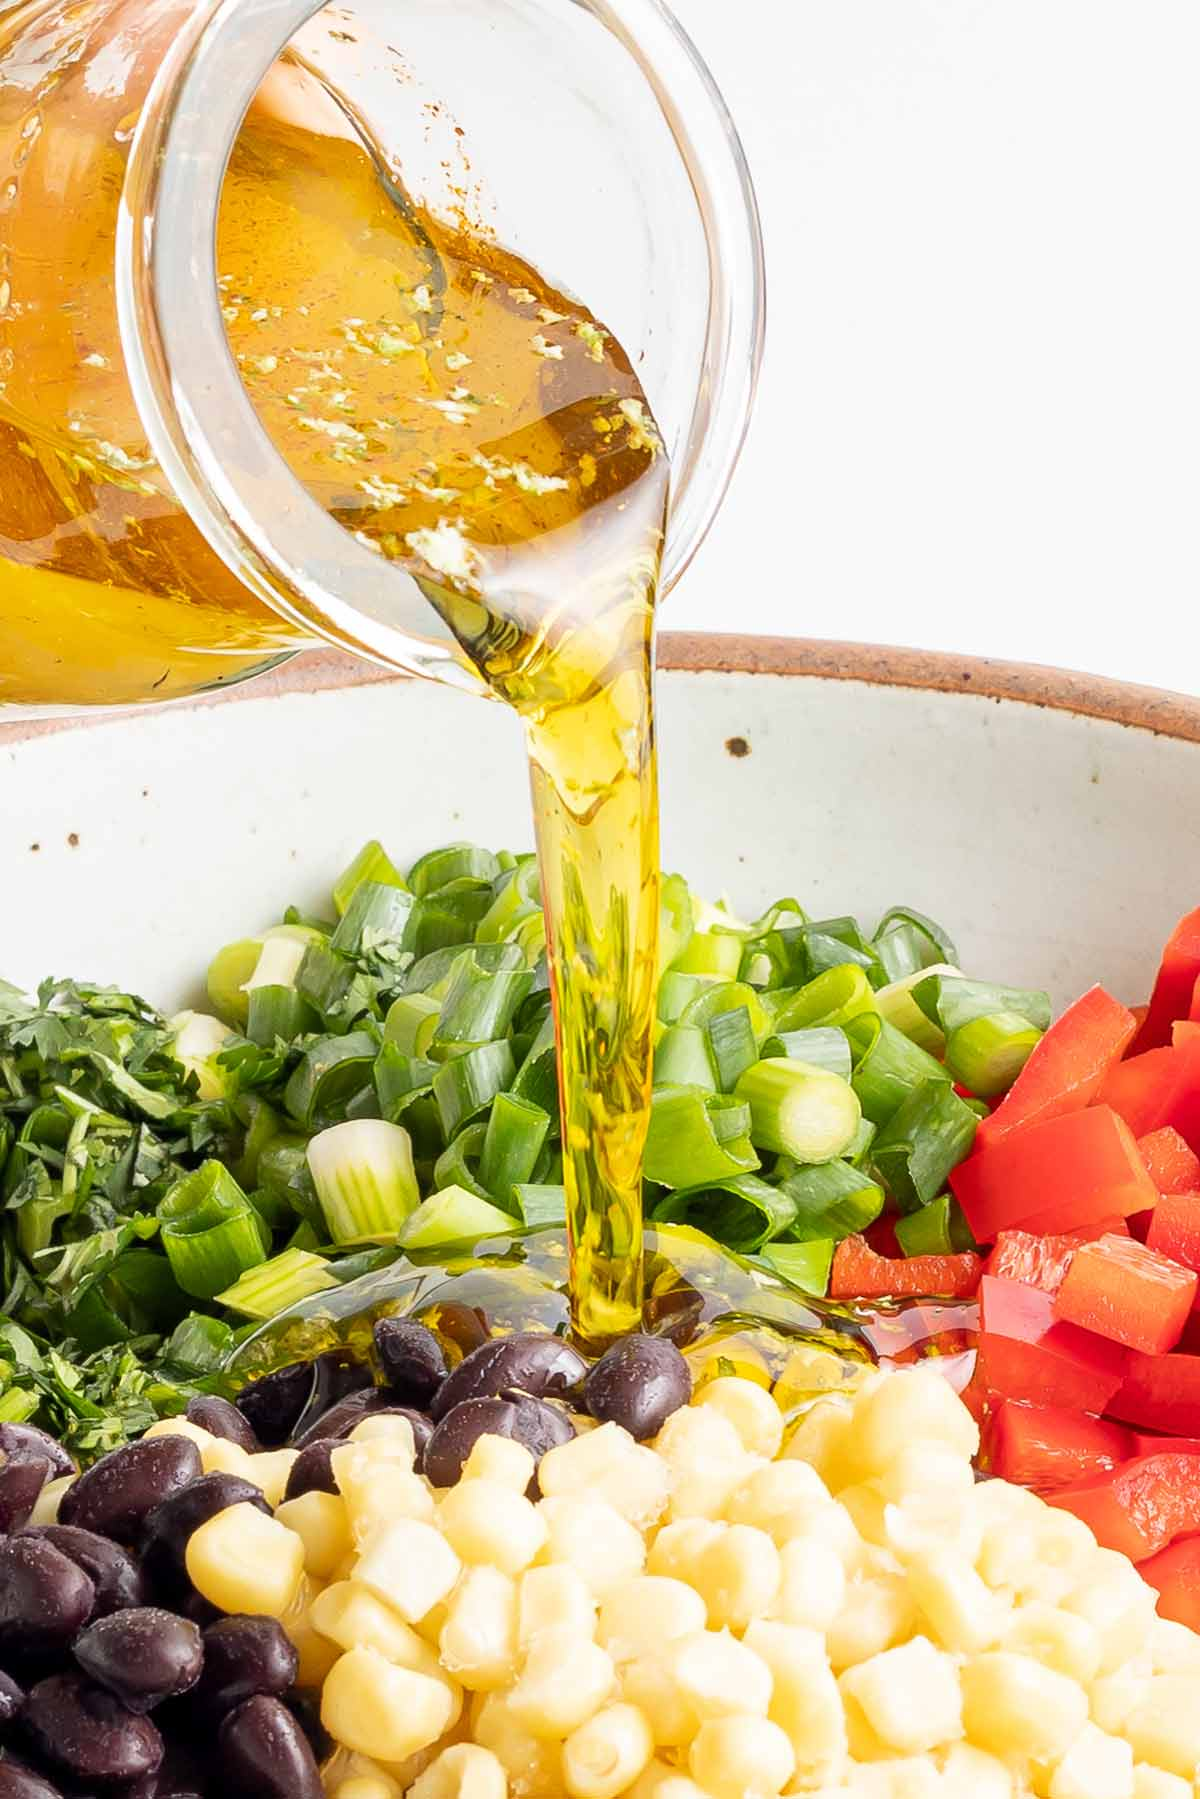 dressing being poured on the salad.